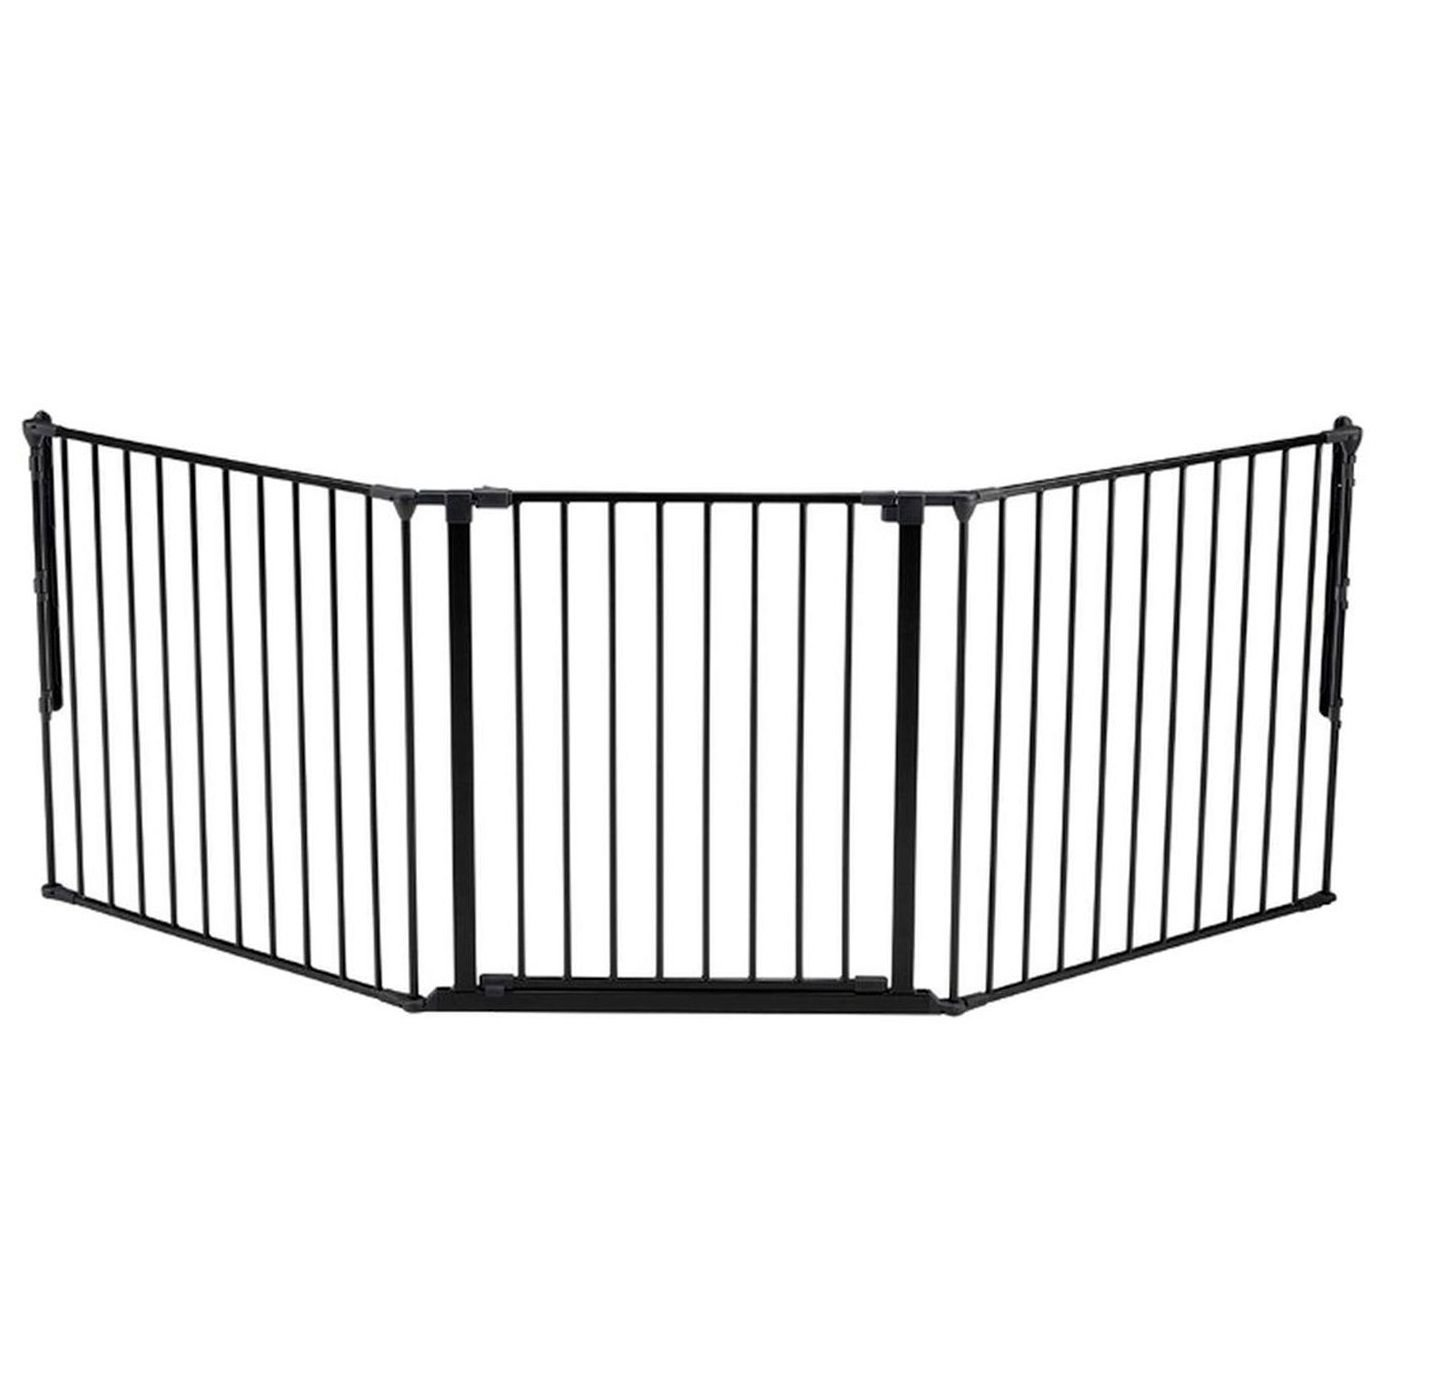 Baby Dan Flex Protection Barrier L Black  Consists of flexible panel units that can be used in many ways Perfect for keeping your child away from staircases or wide door openings Easy to mount and you can extend your gate with further section 1